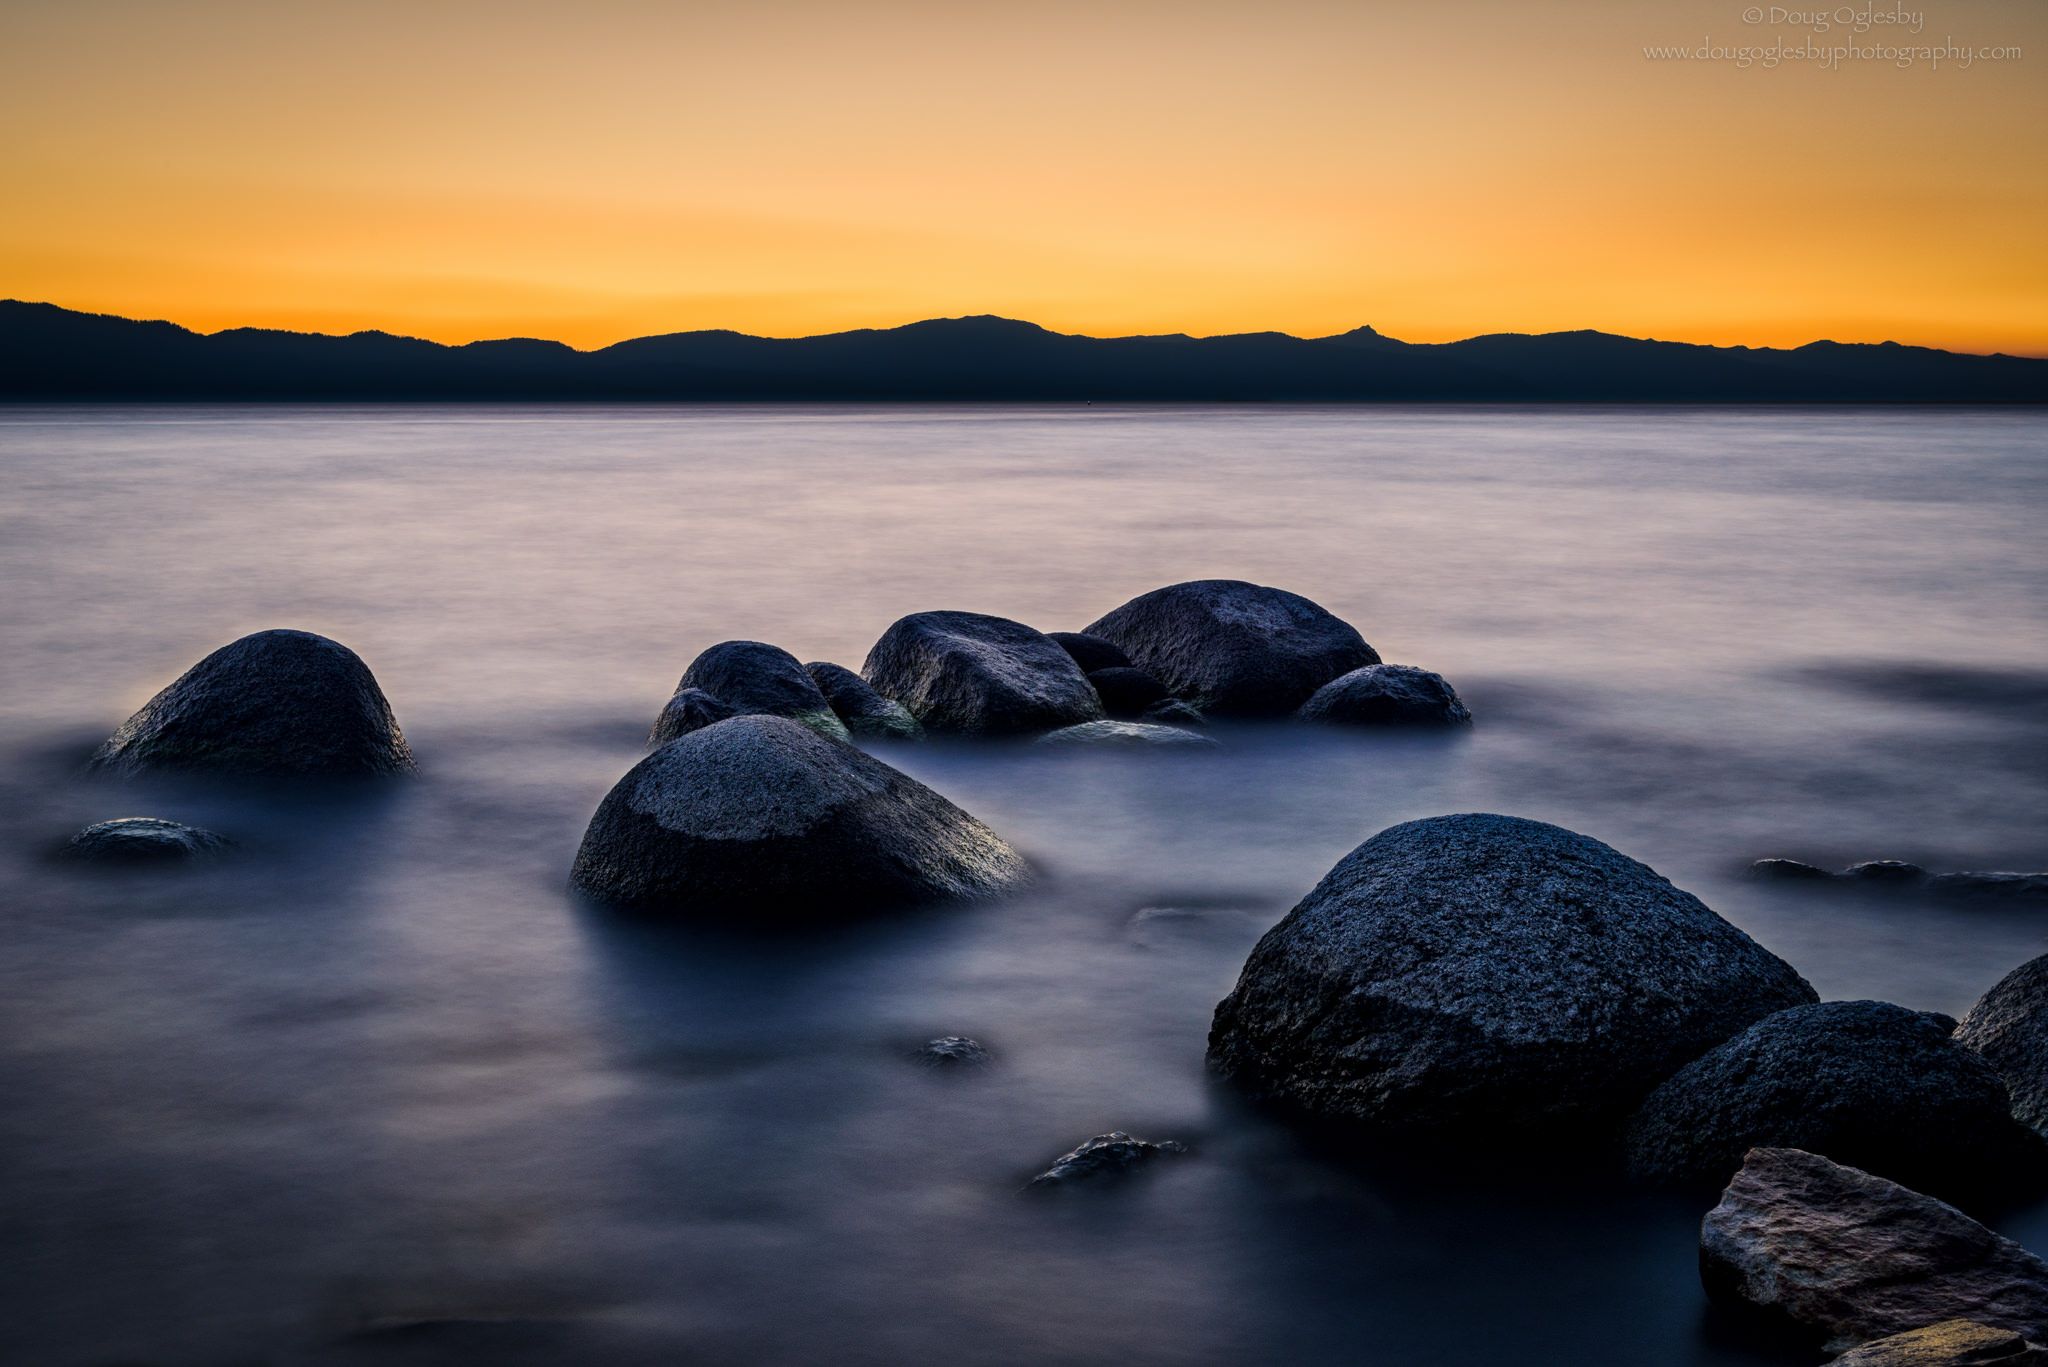 © Tahoe Zephyr Cove, Lake Tahoe. Photograph by Doug Oglesby. photo@dougoglesby.com. A PHOTOGRAPHY WORLD Article, Beautiful Lake Tahoe @ photographyworld.org